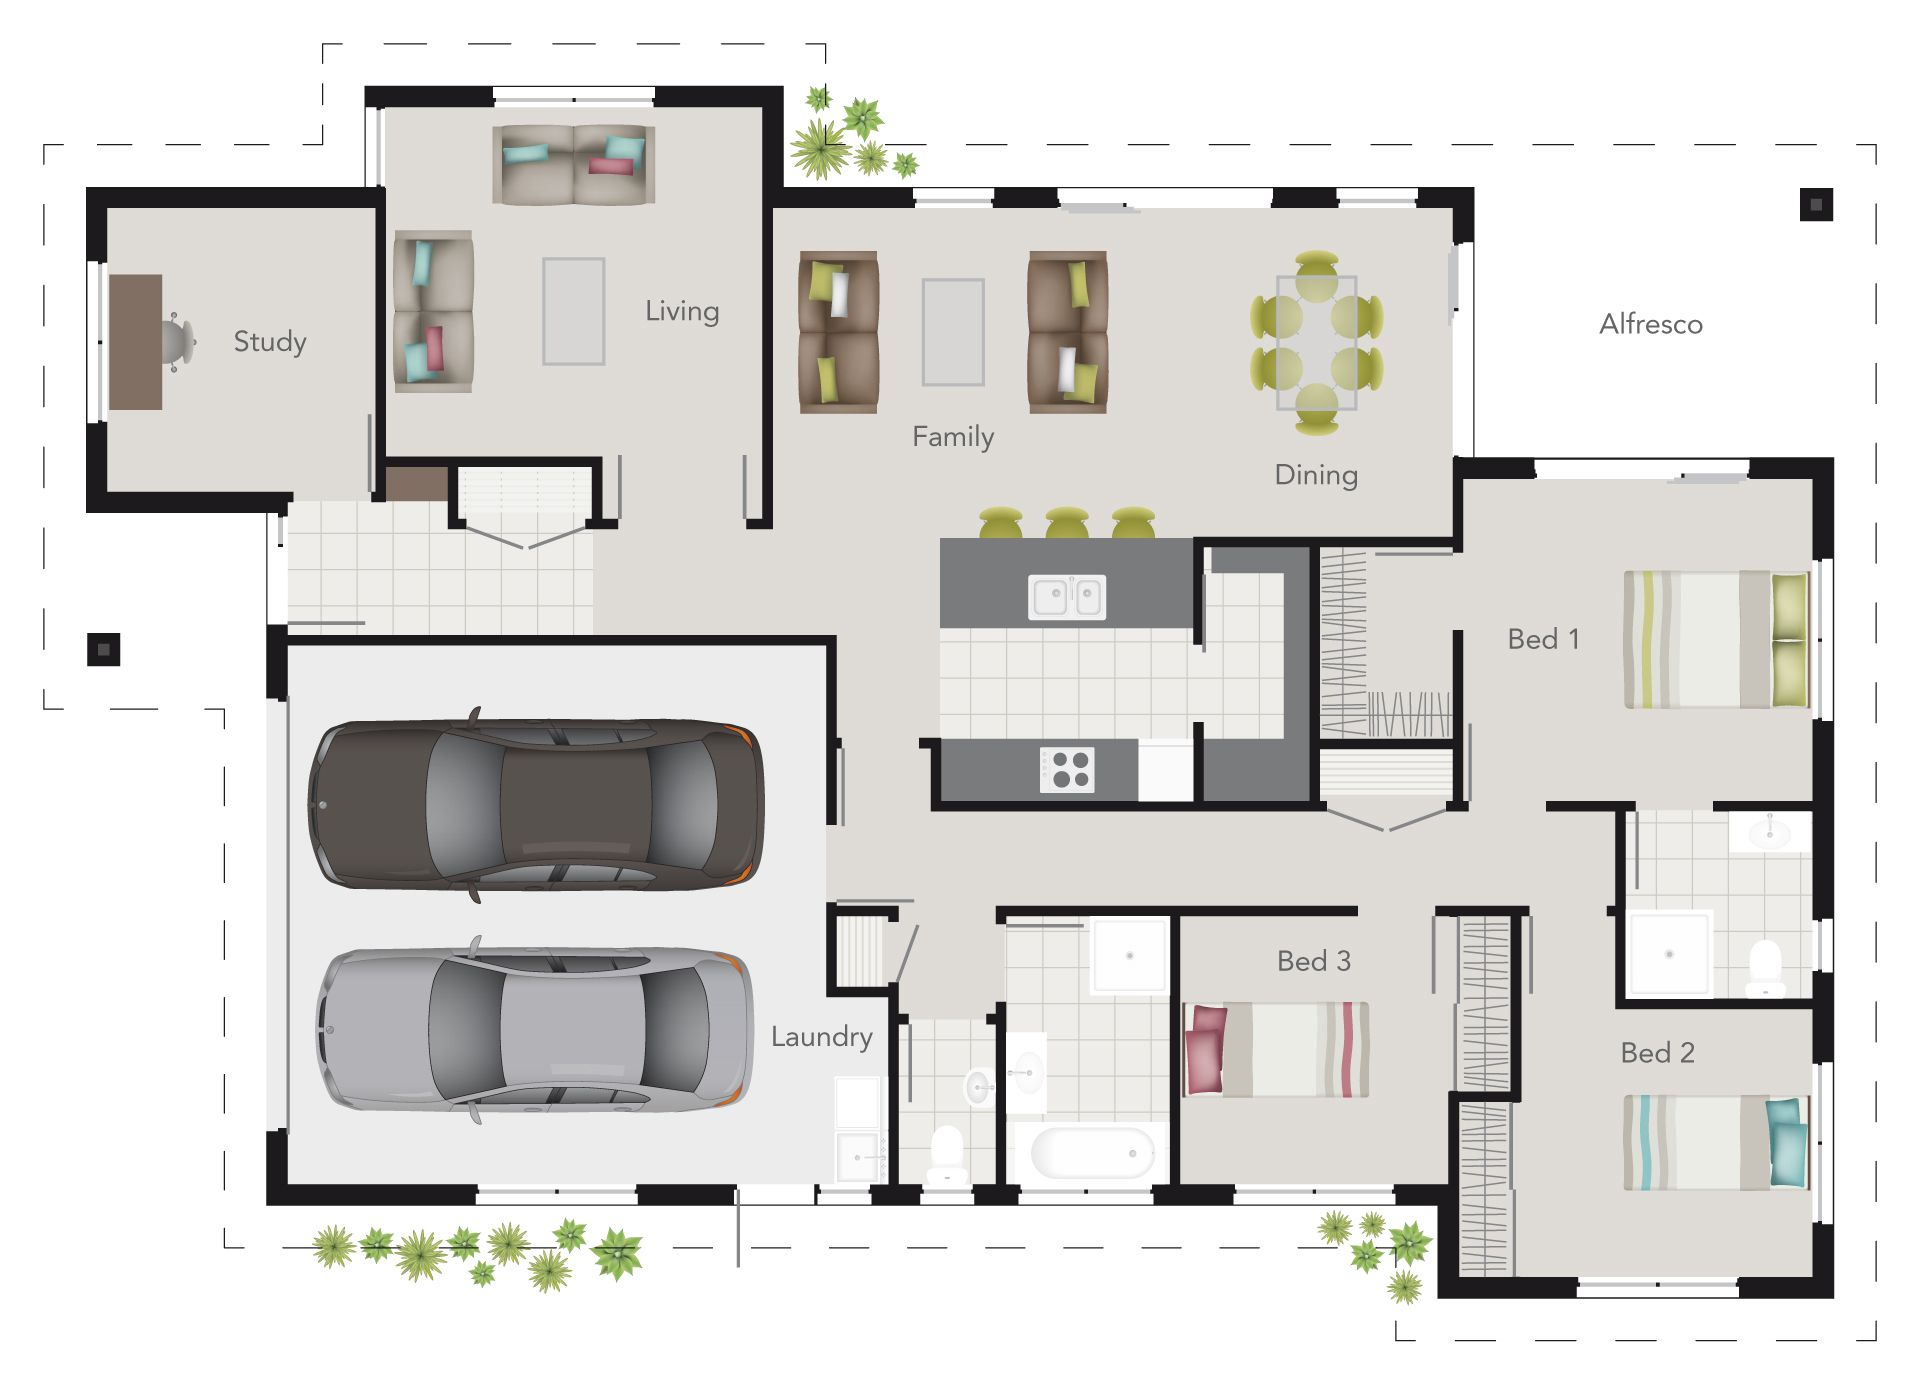 G j gardner wright plan 3 bedroom floor plan with study for One room home designs